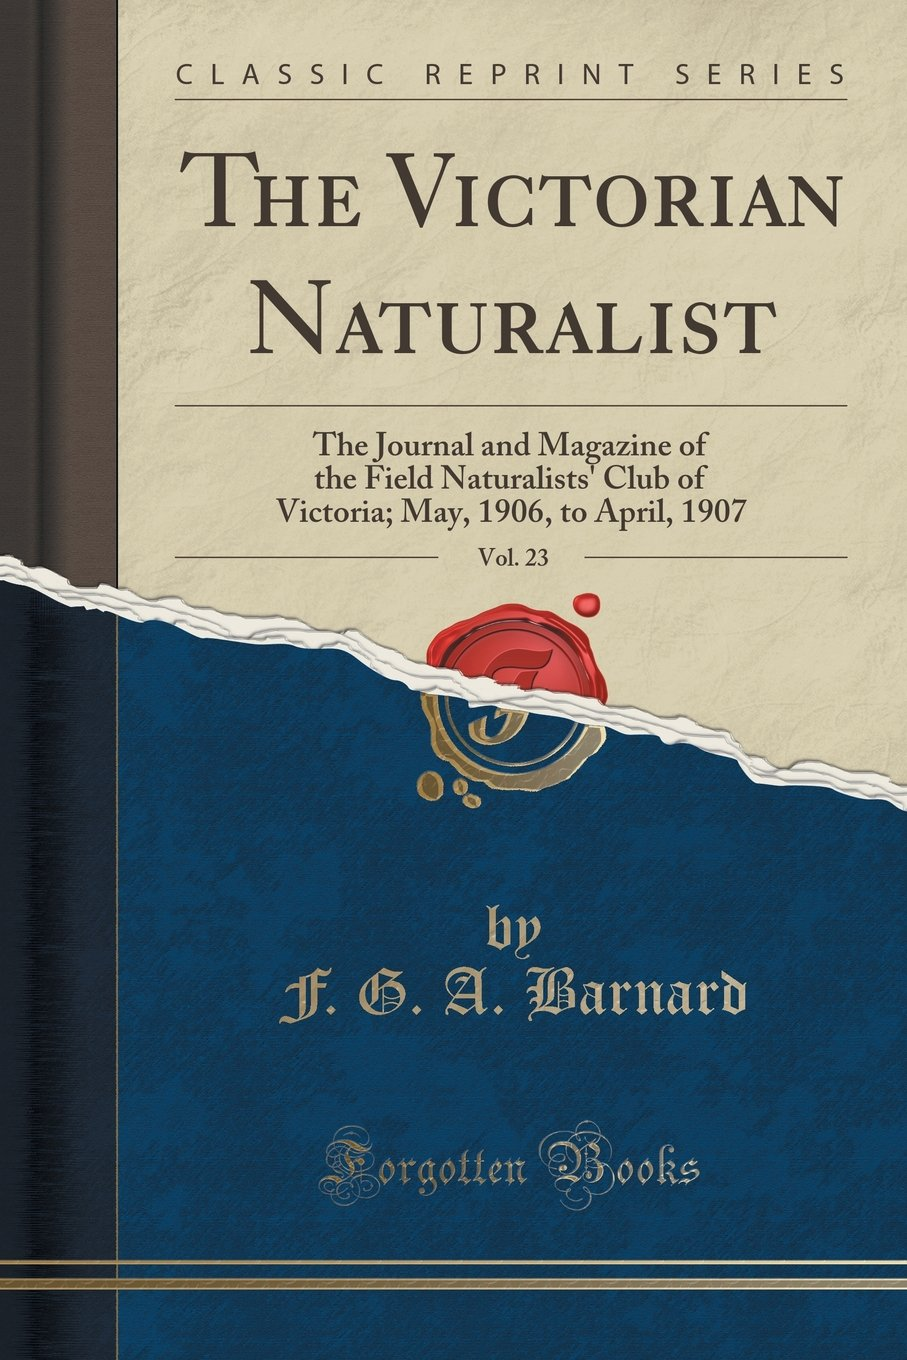 Read Online The Victorian Naturalist, Vol. 23: The Journal and Magazine of the Field Naturalists' Club of Victoria; May, 1906, to April, 1907 (Classic Reprint) ebook